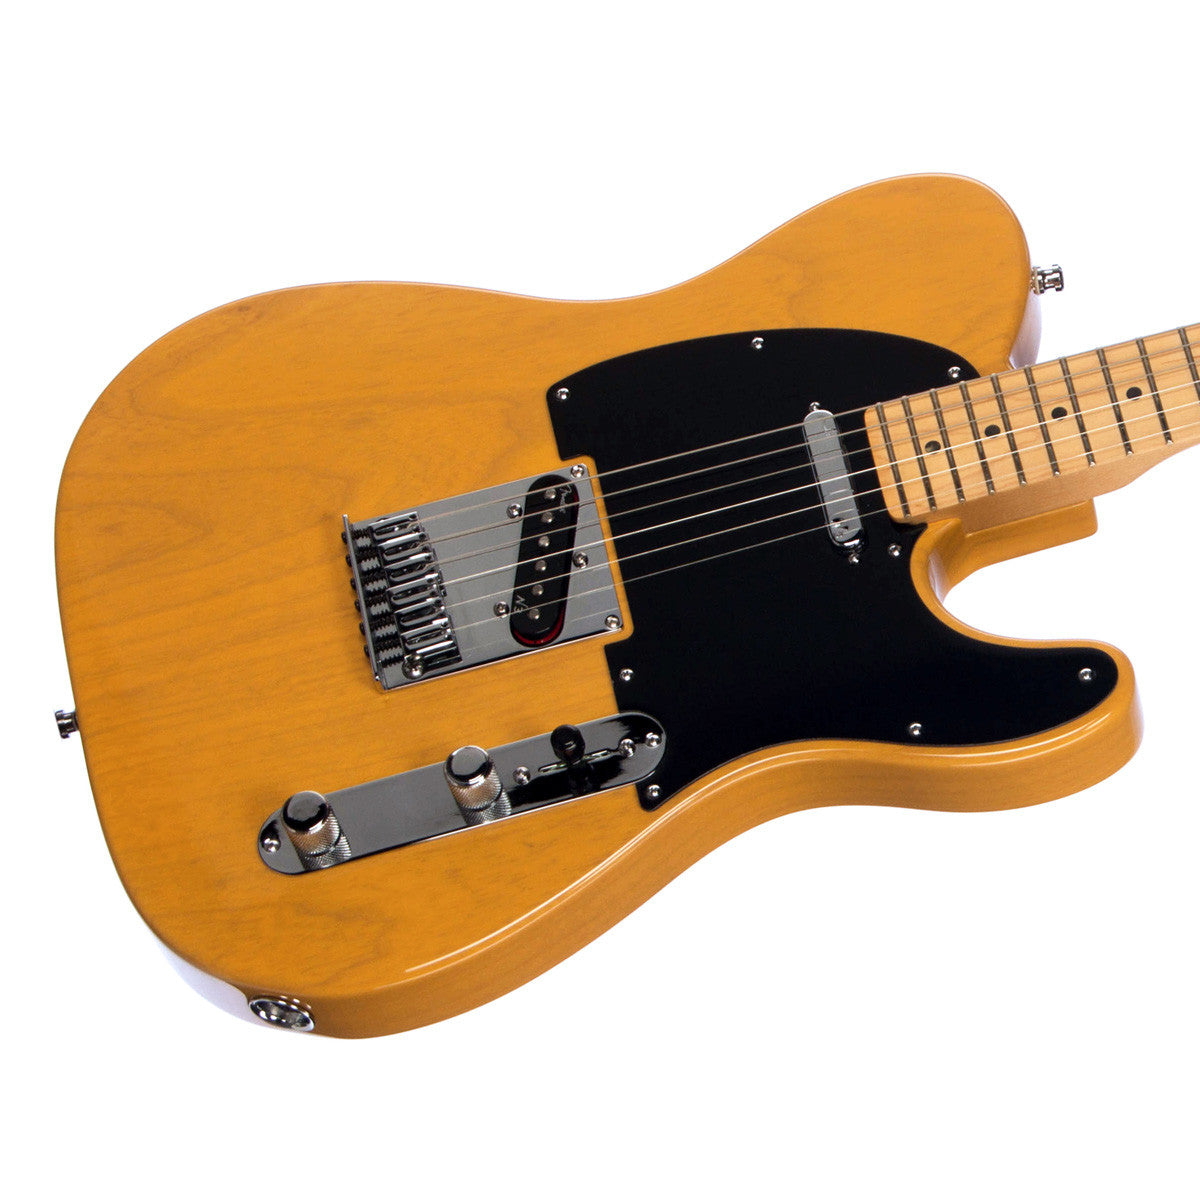 fender_american_deluxe_telecaster_am_dlx_tele_butterscotch_blonde_maple_neck_electric_guitar_0119502750_frontbody american deluxe telecaster wiring diagrams dolgular com fender american deluxe telecaster wiring diagram at cita.asia